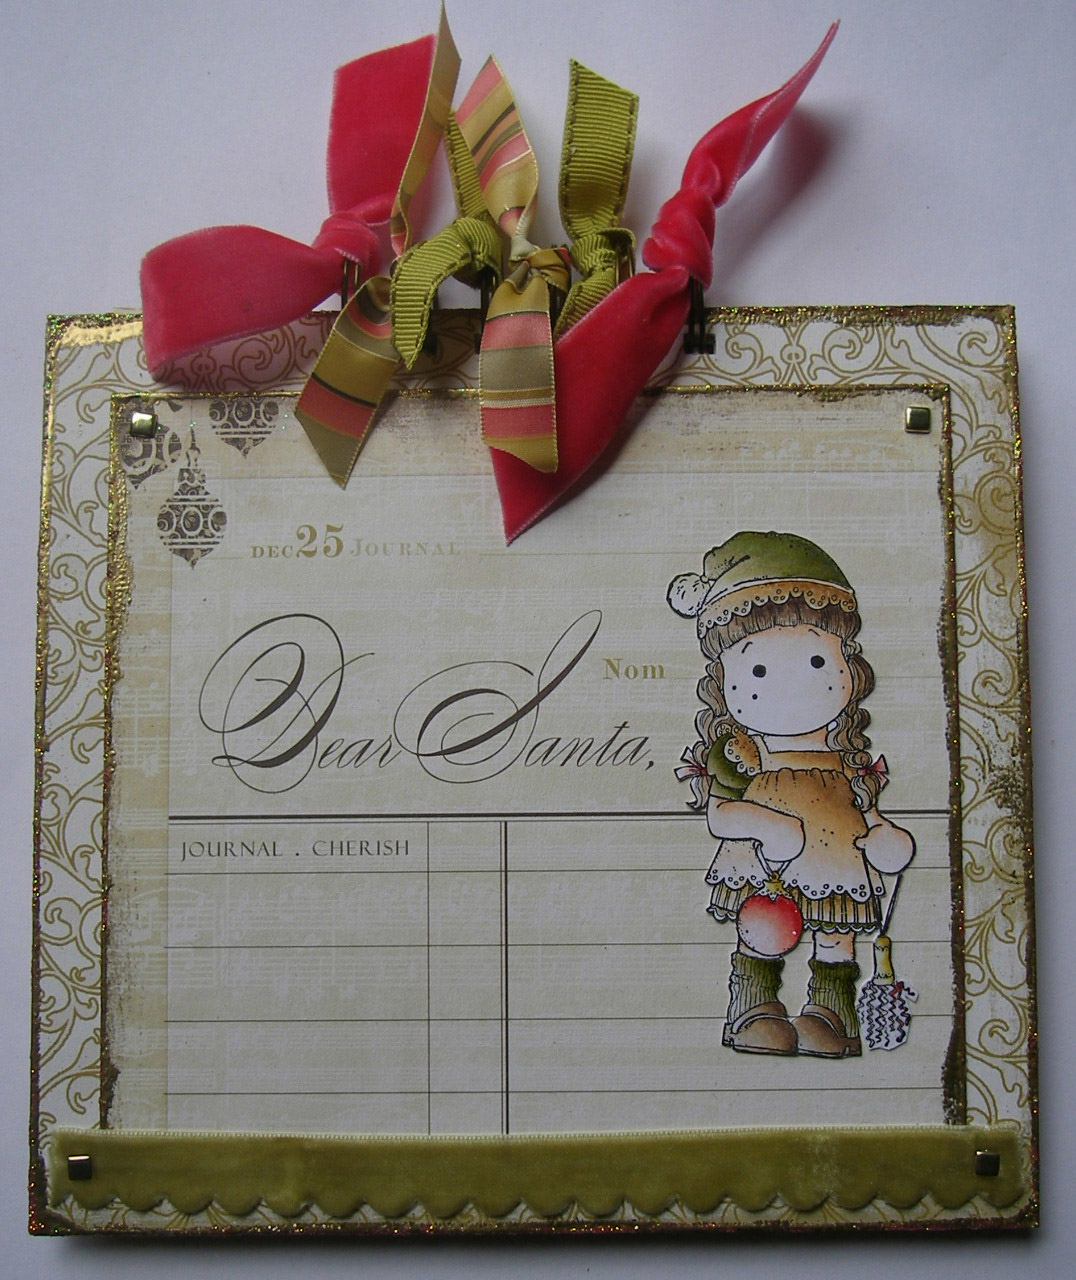 *dear santa* OOAK Handmade December 25 Journal Photo Album